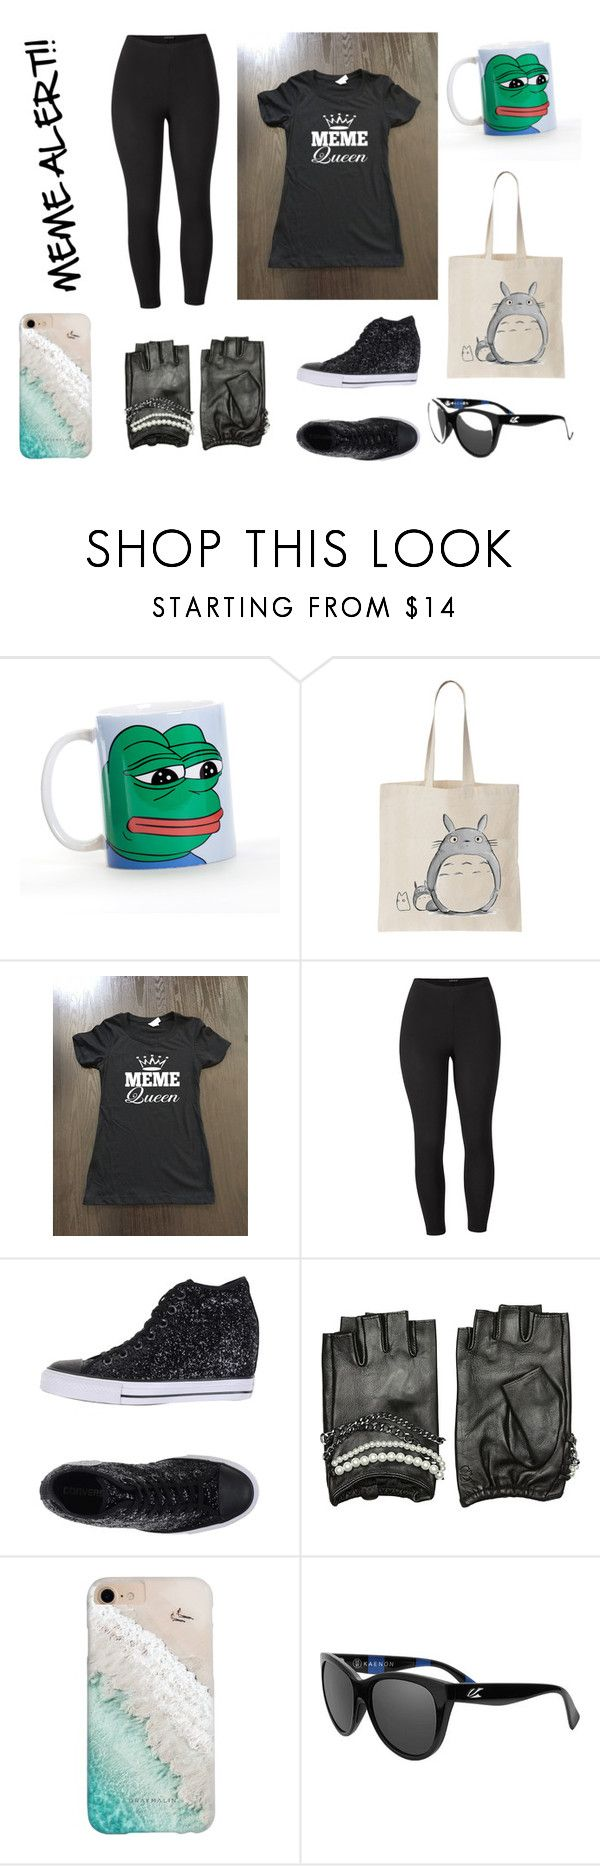 """""""The Meme Lords are Coming!"""" by annabethchasesdaughter on Polyvore featuring Venus, Converse, Karl Lagerfeld, Gray Malin, Kaenon and plus size clothing"""